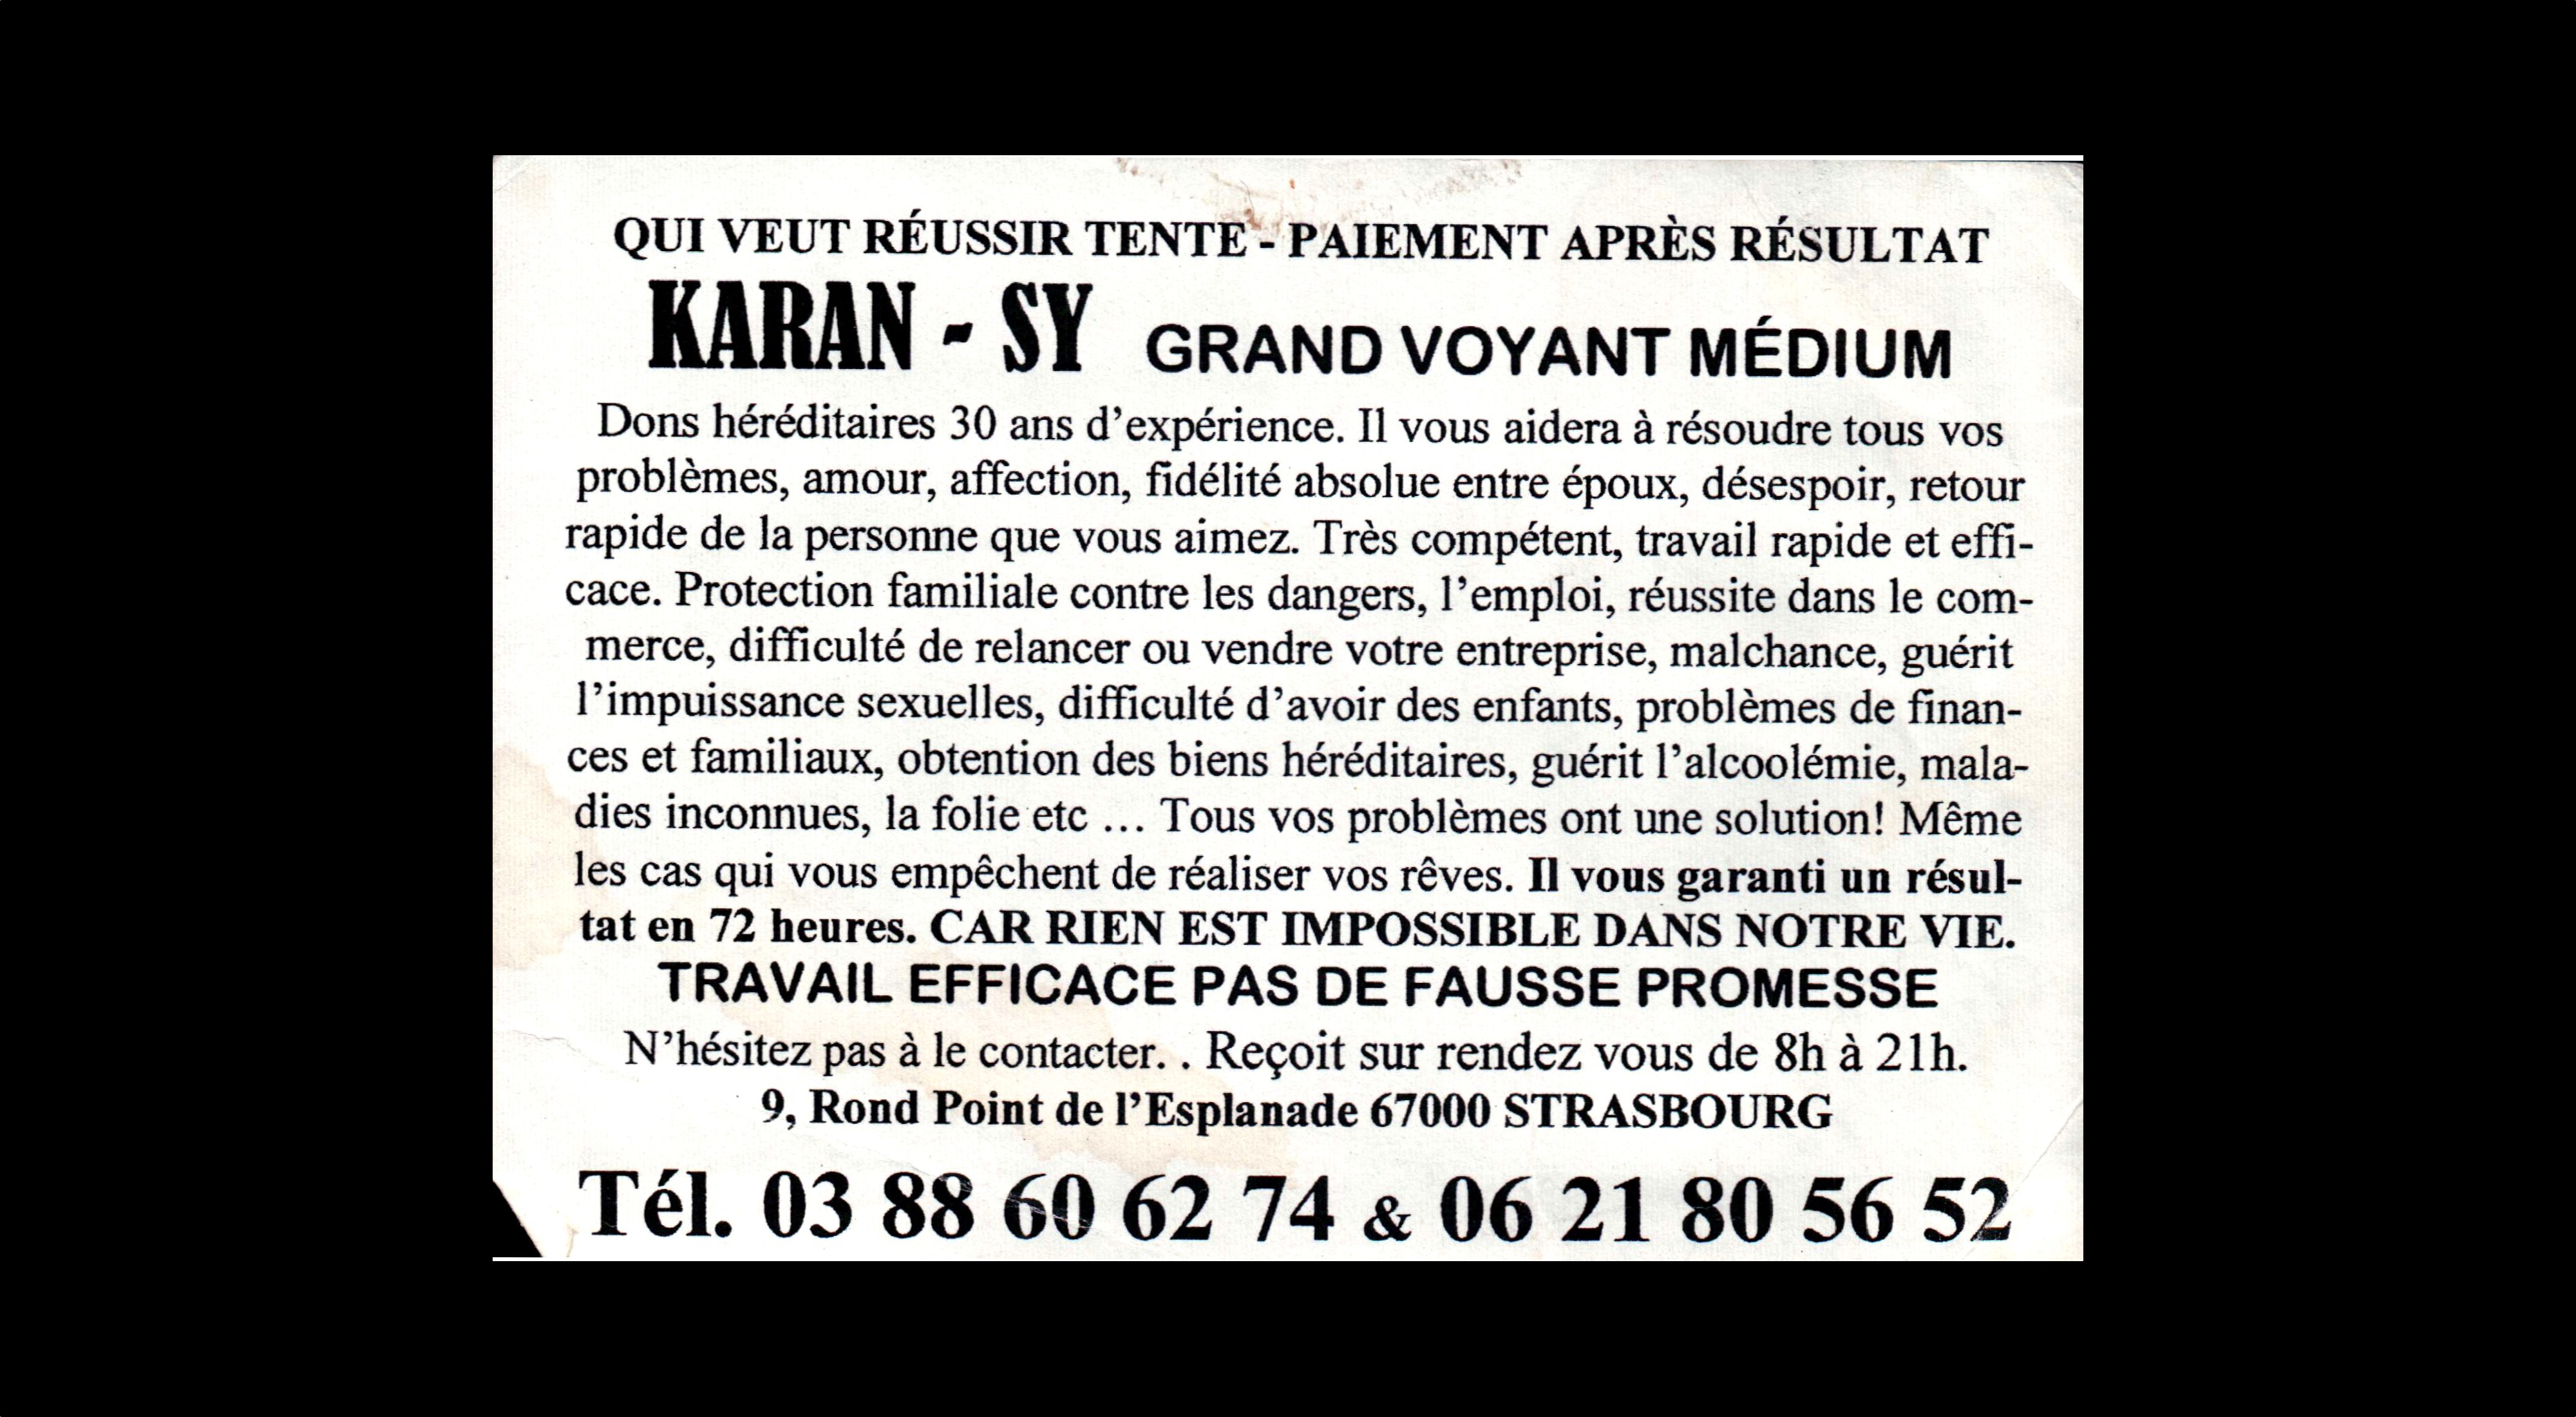 card of KARAN - SY